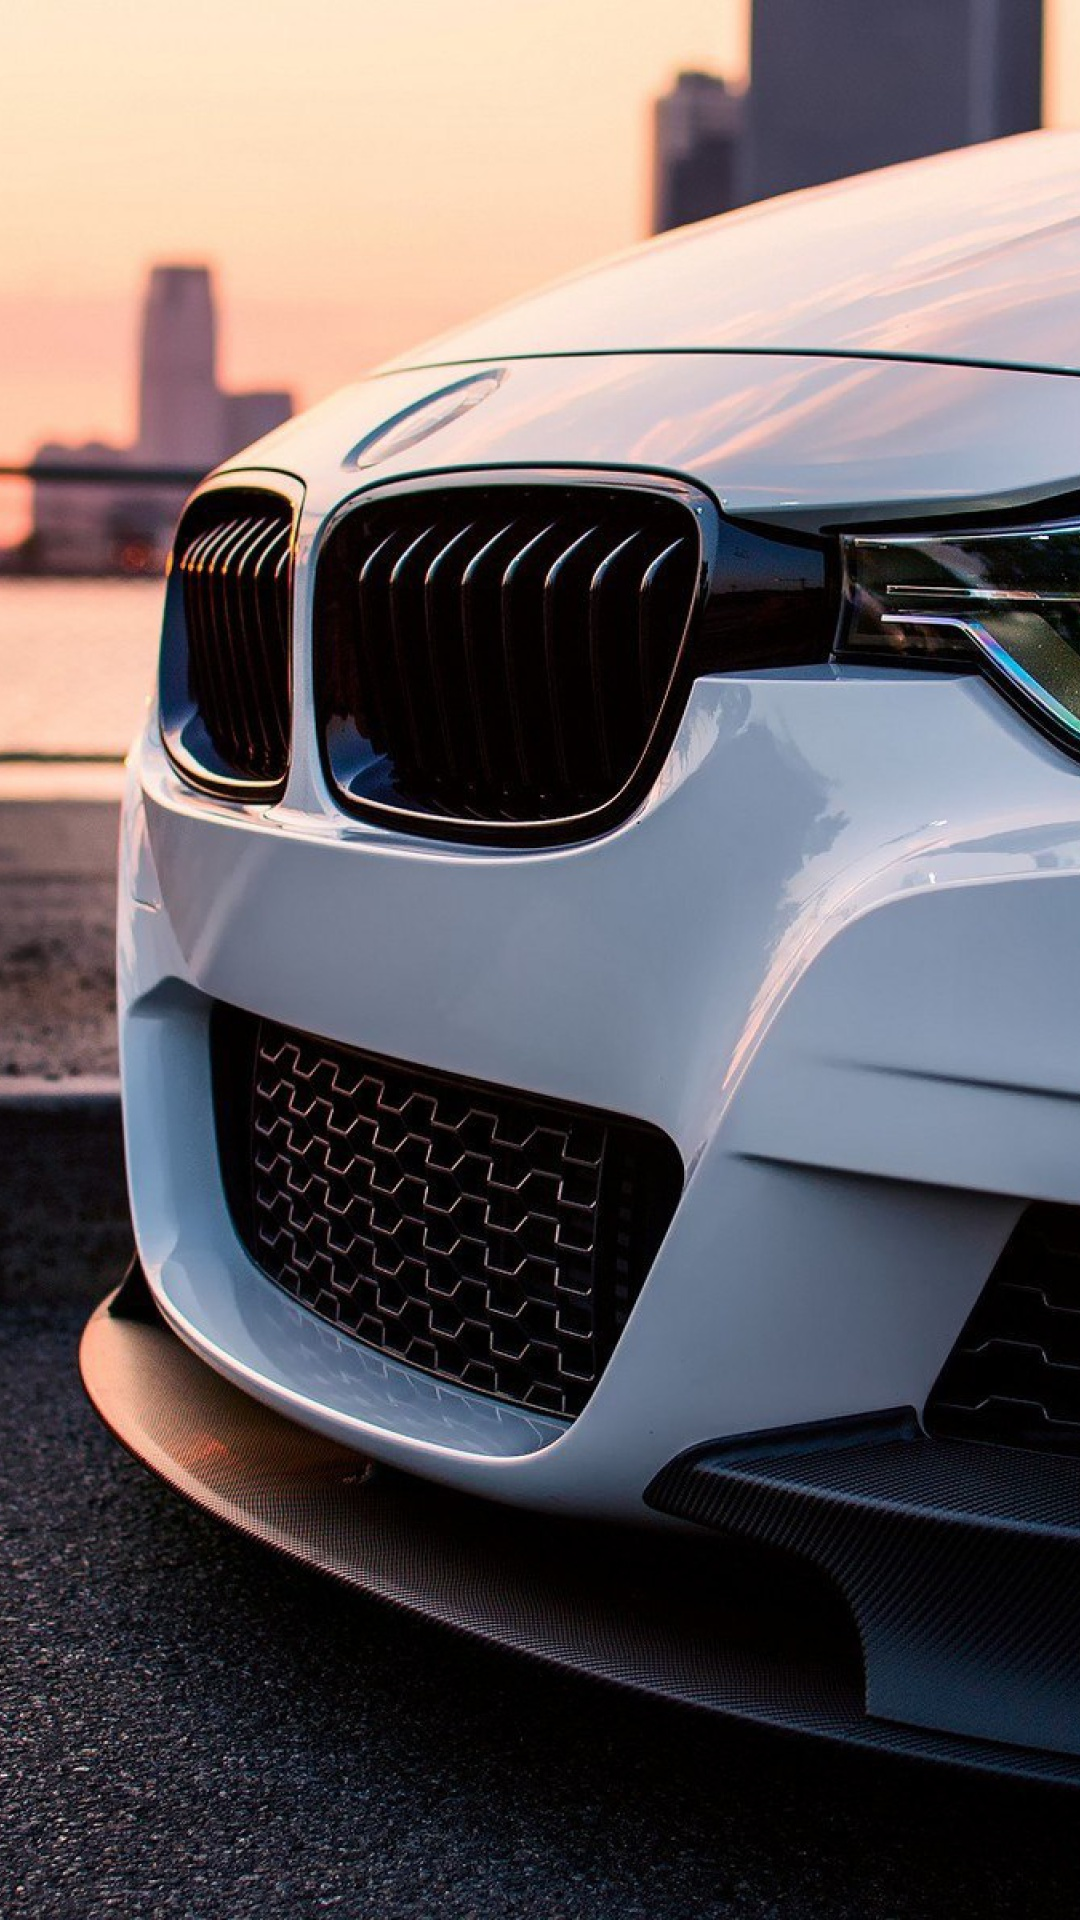 Full Hd For Bmw Iphone Wallpaper High Quality Smartphone PIC